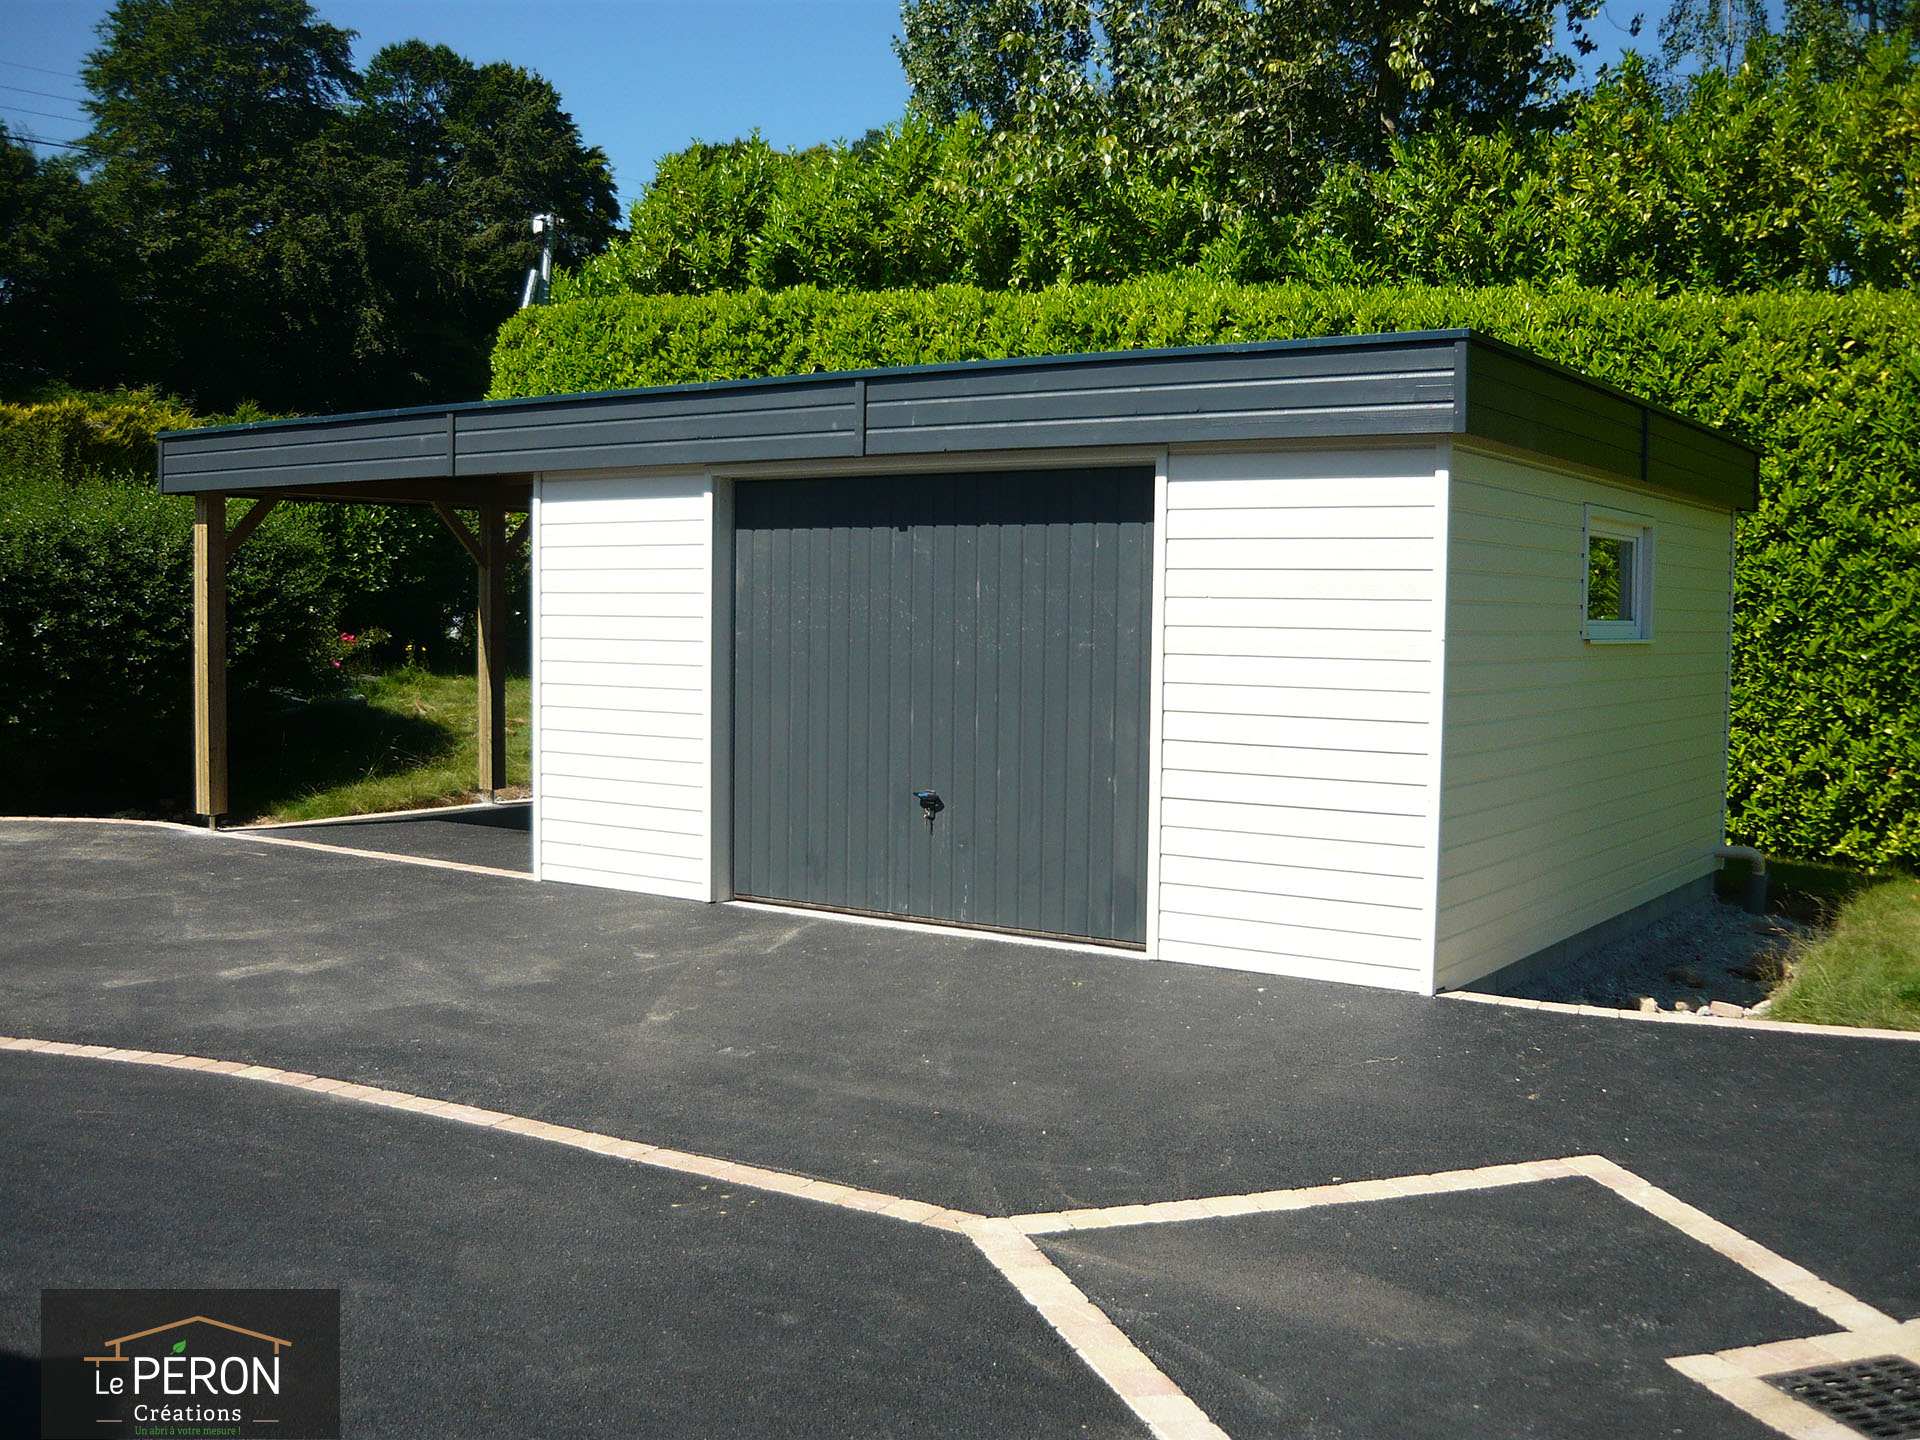 bardage carport good carport et garage with bardage carport beautiful nizet alexandre bardage. Black Bedroom Furniture Sets. Home Design Ideas